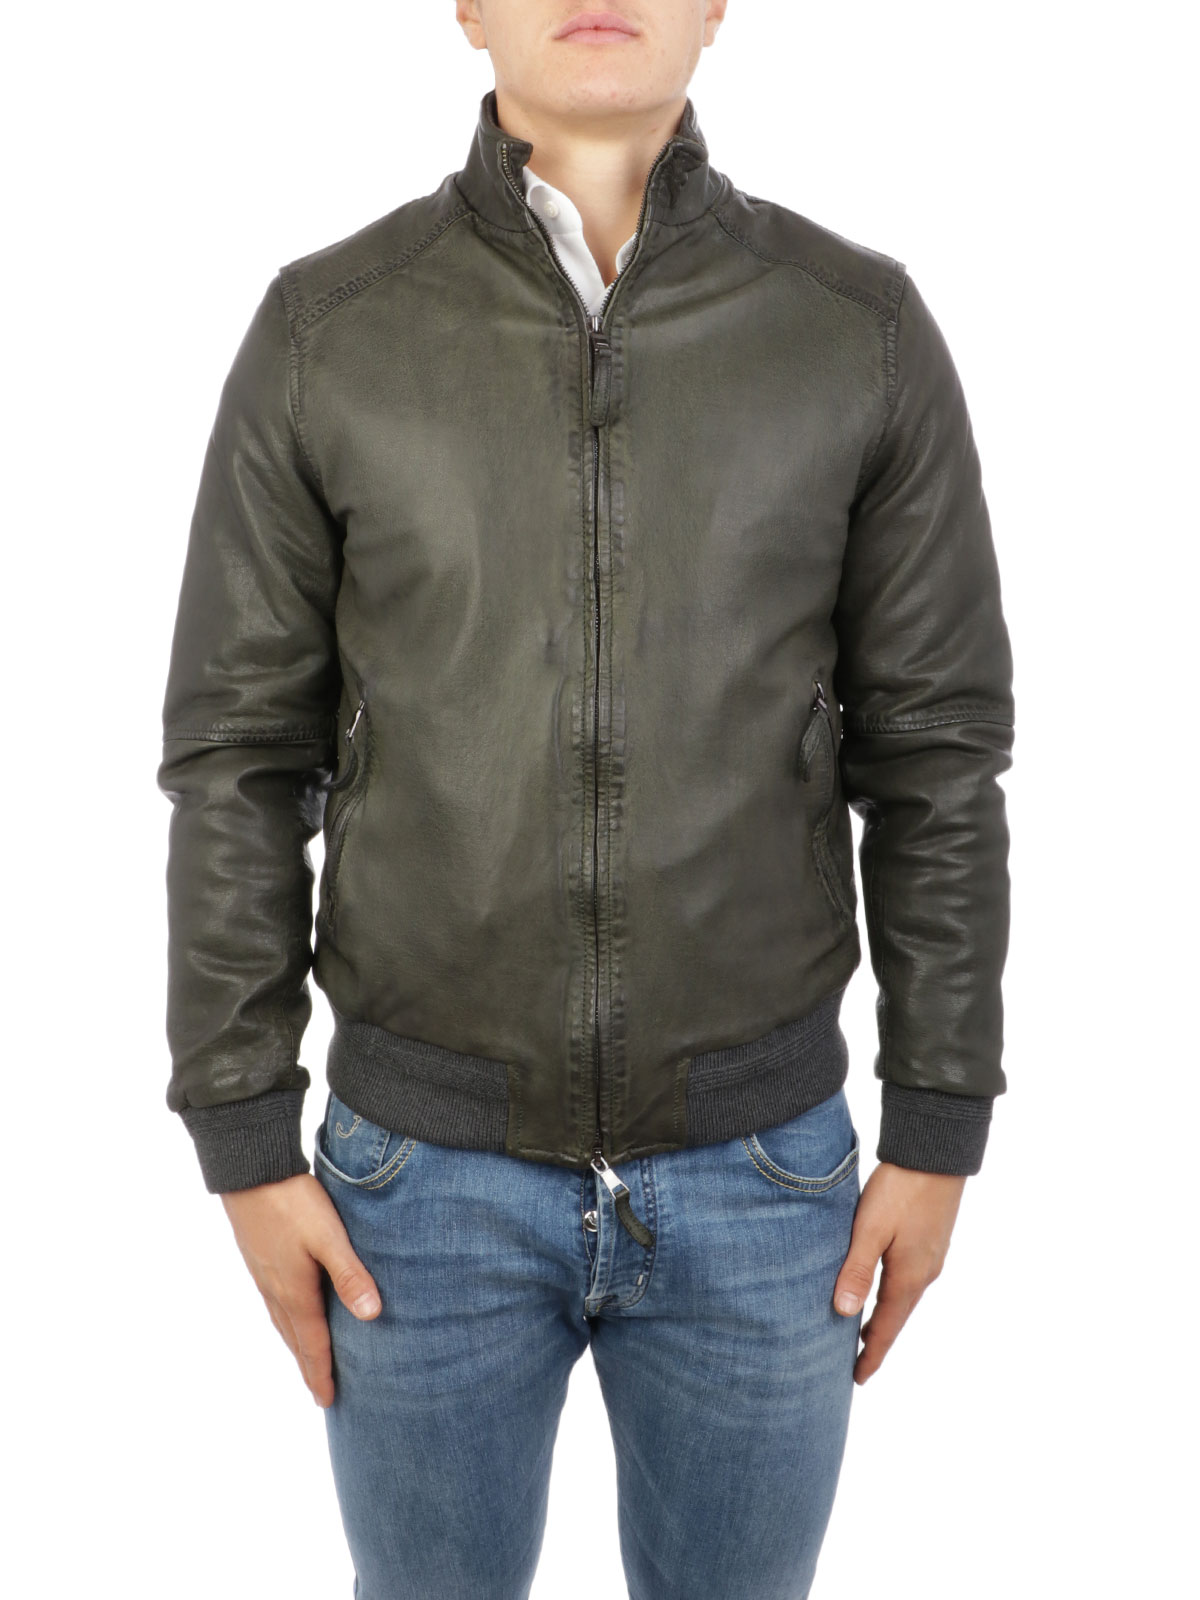 Immagine di THE JACK LEATHERS | Giacca Uomo in Pelle Antoine